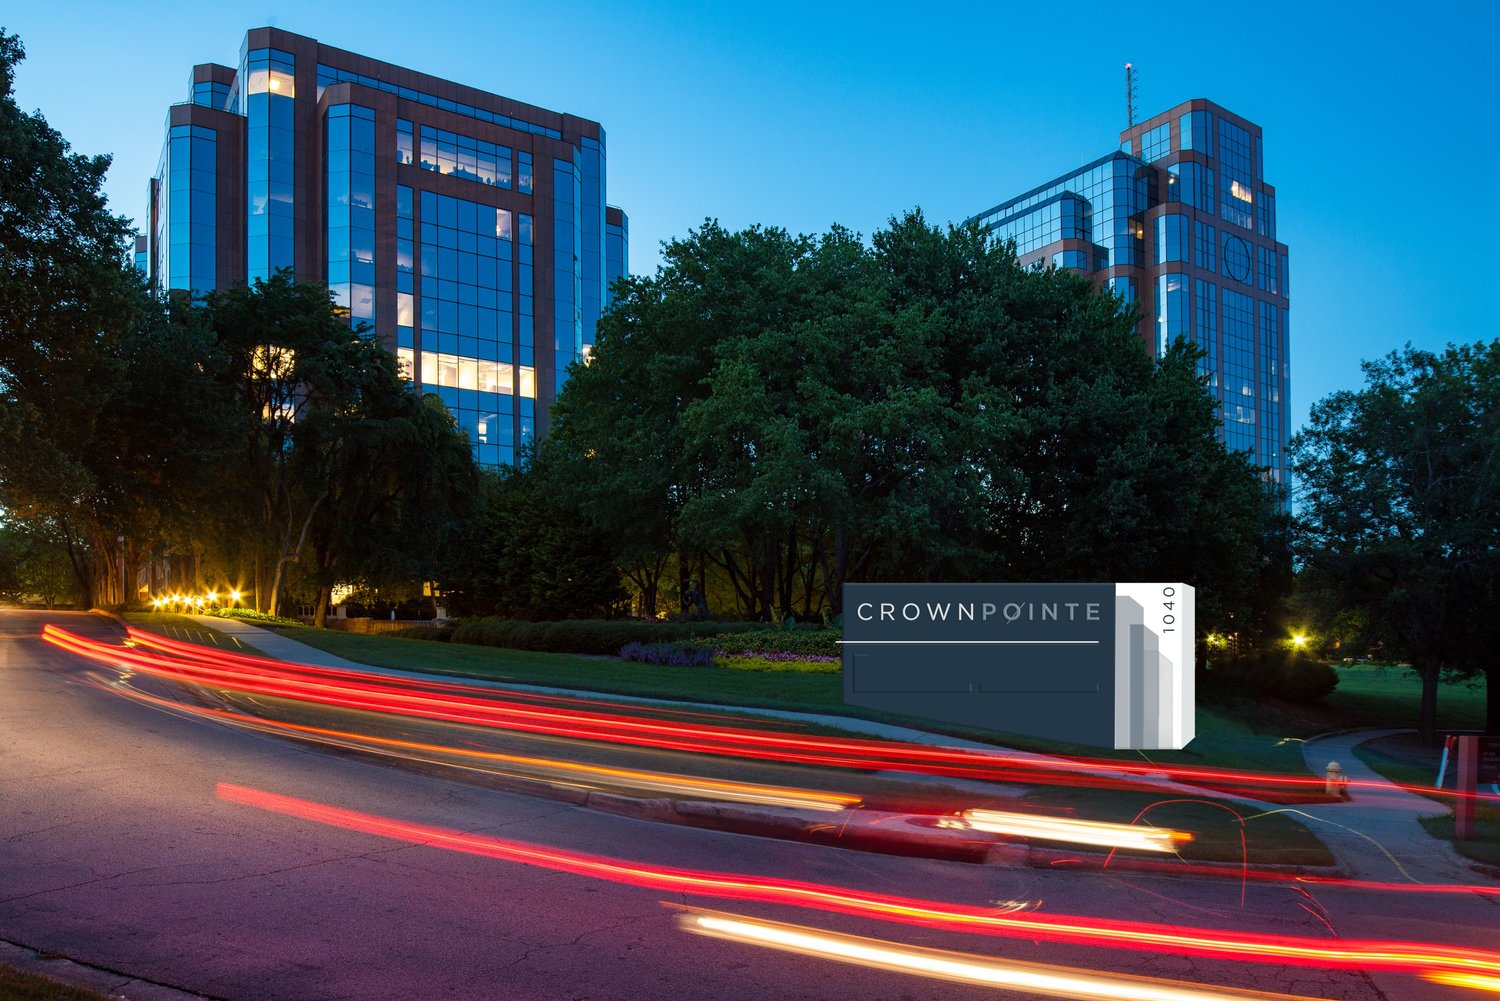 Crown pointe campus and signage photo.jpg